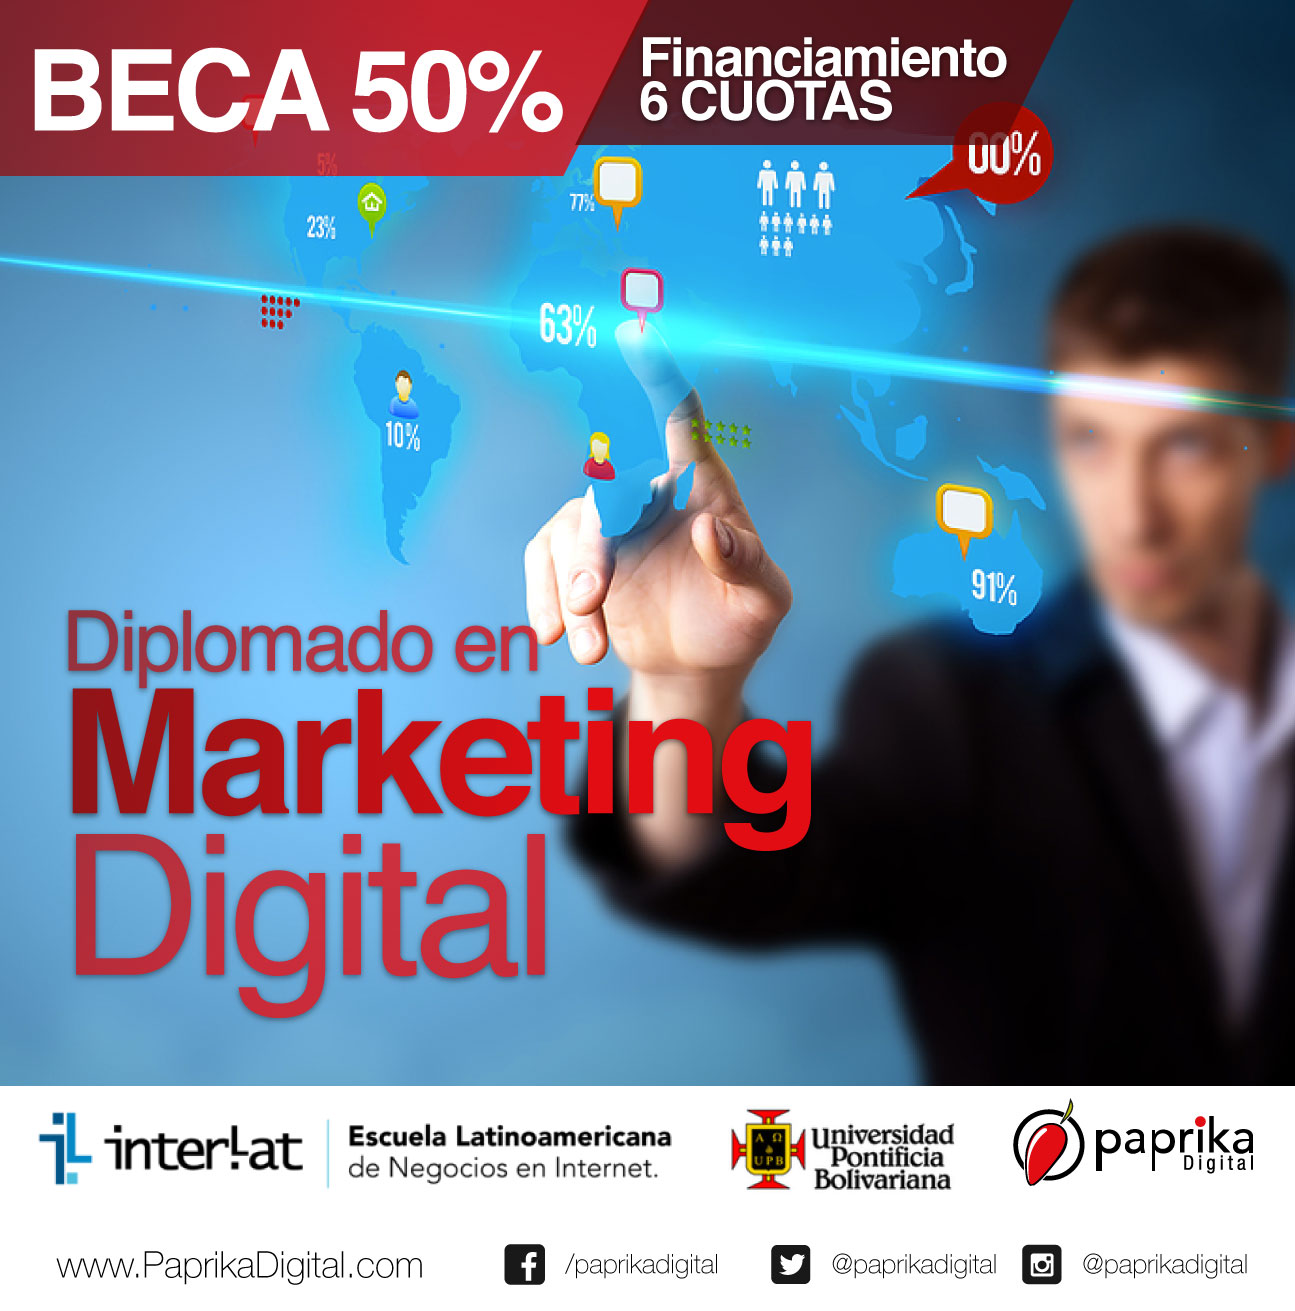 Último día para matricular el Diplomado en Marketing Digital